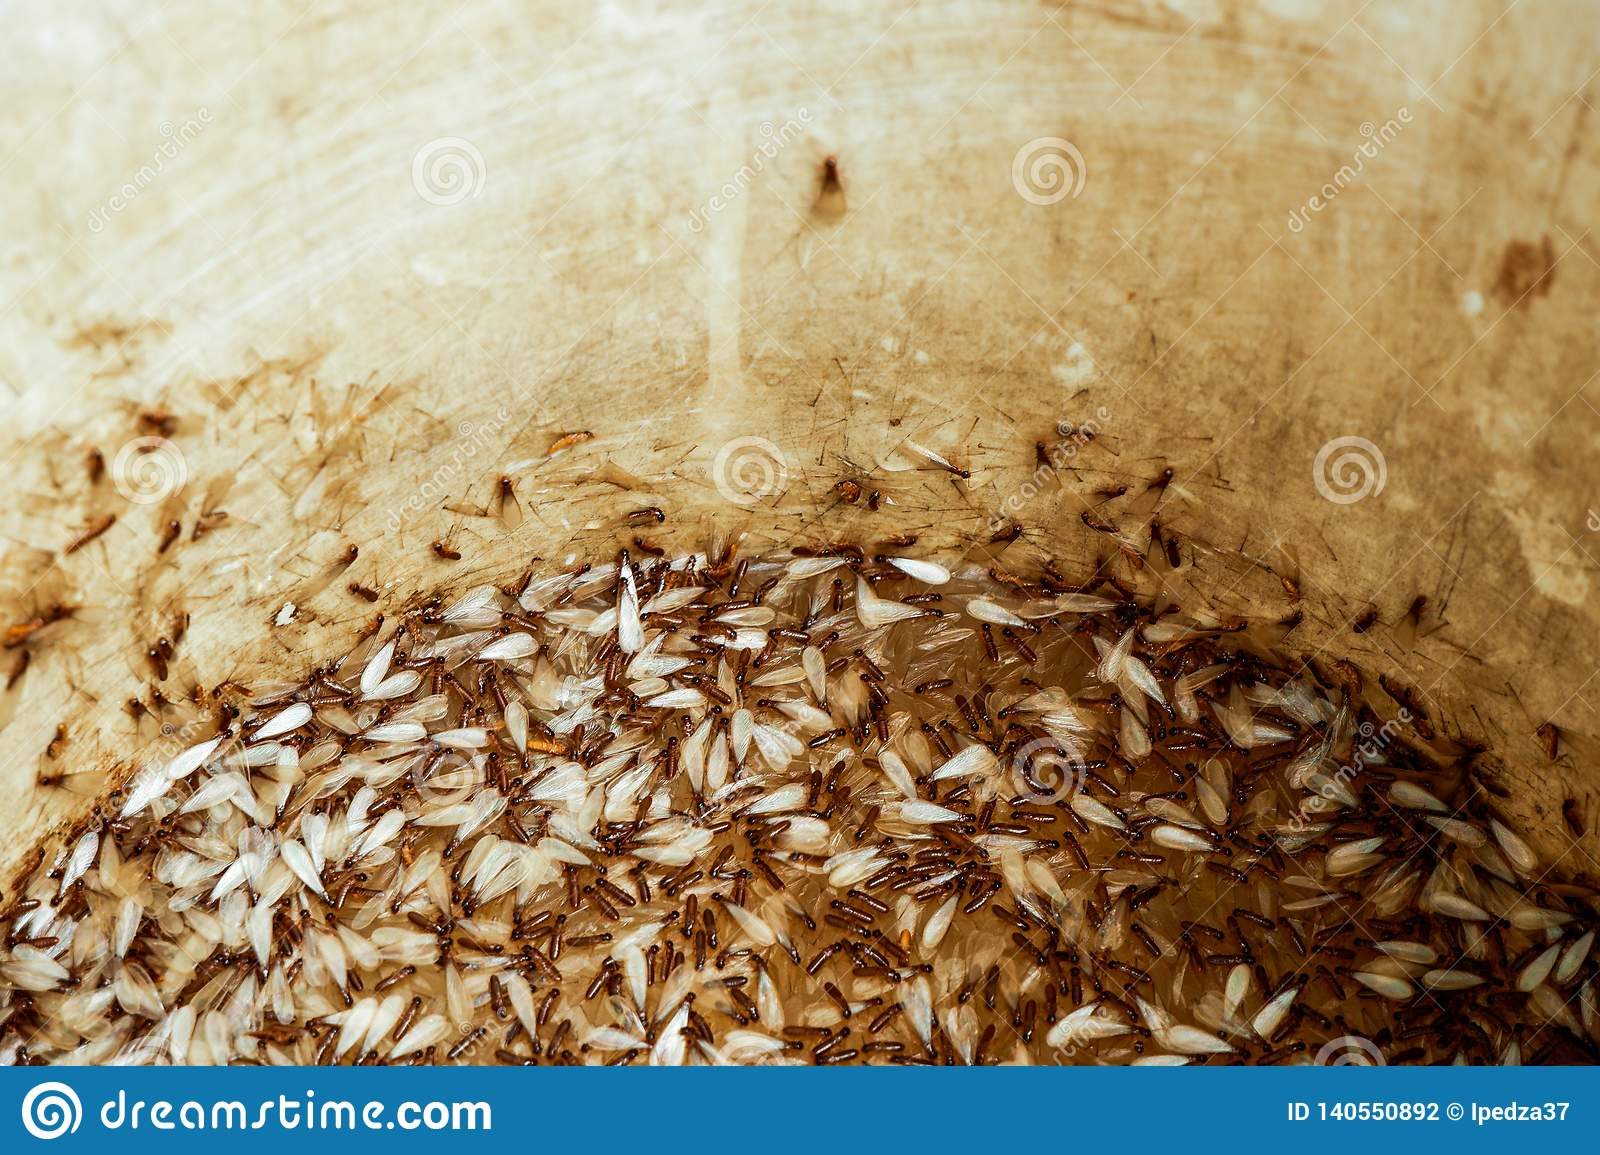 Moths or termites in a water tank